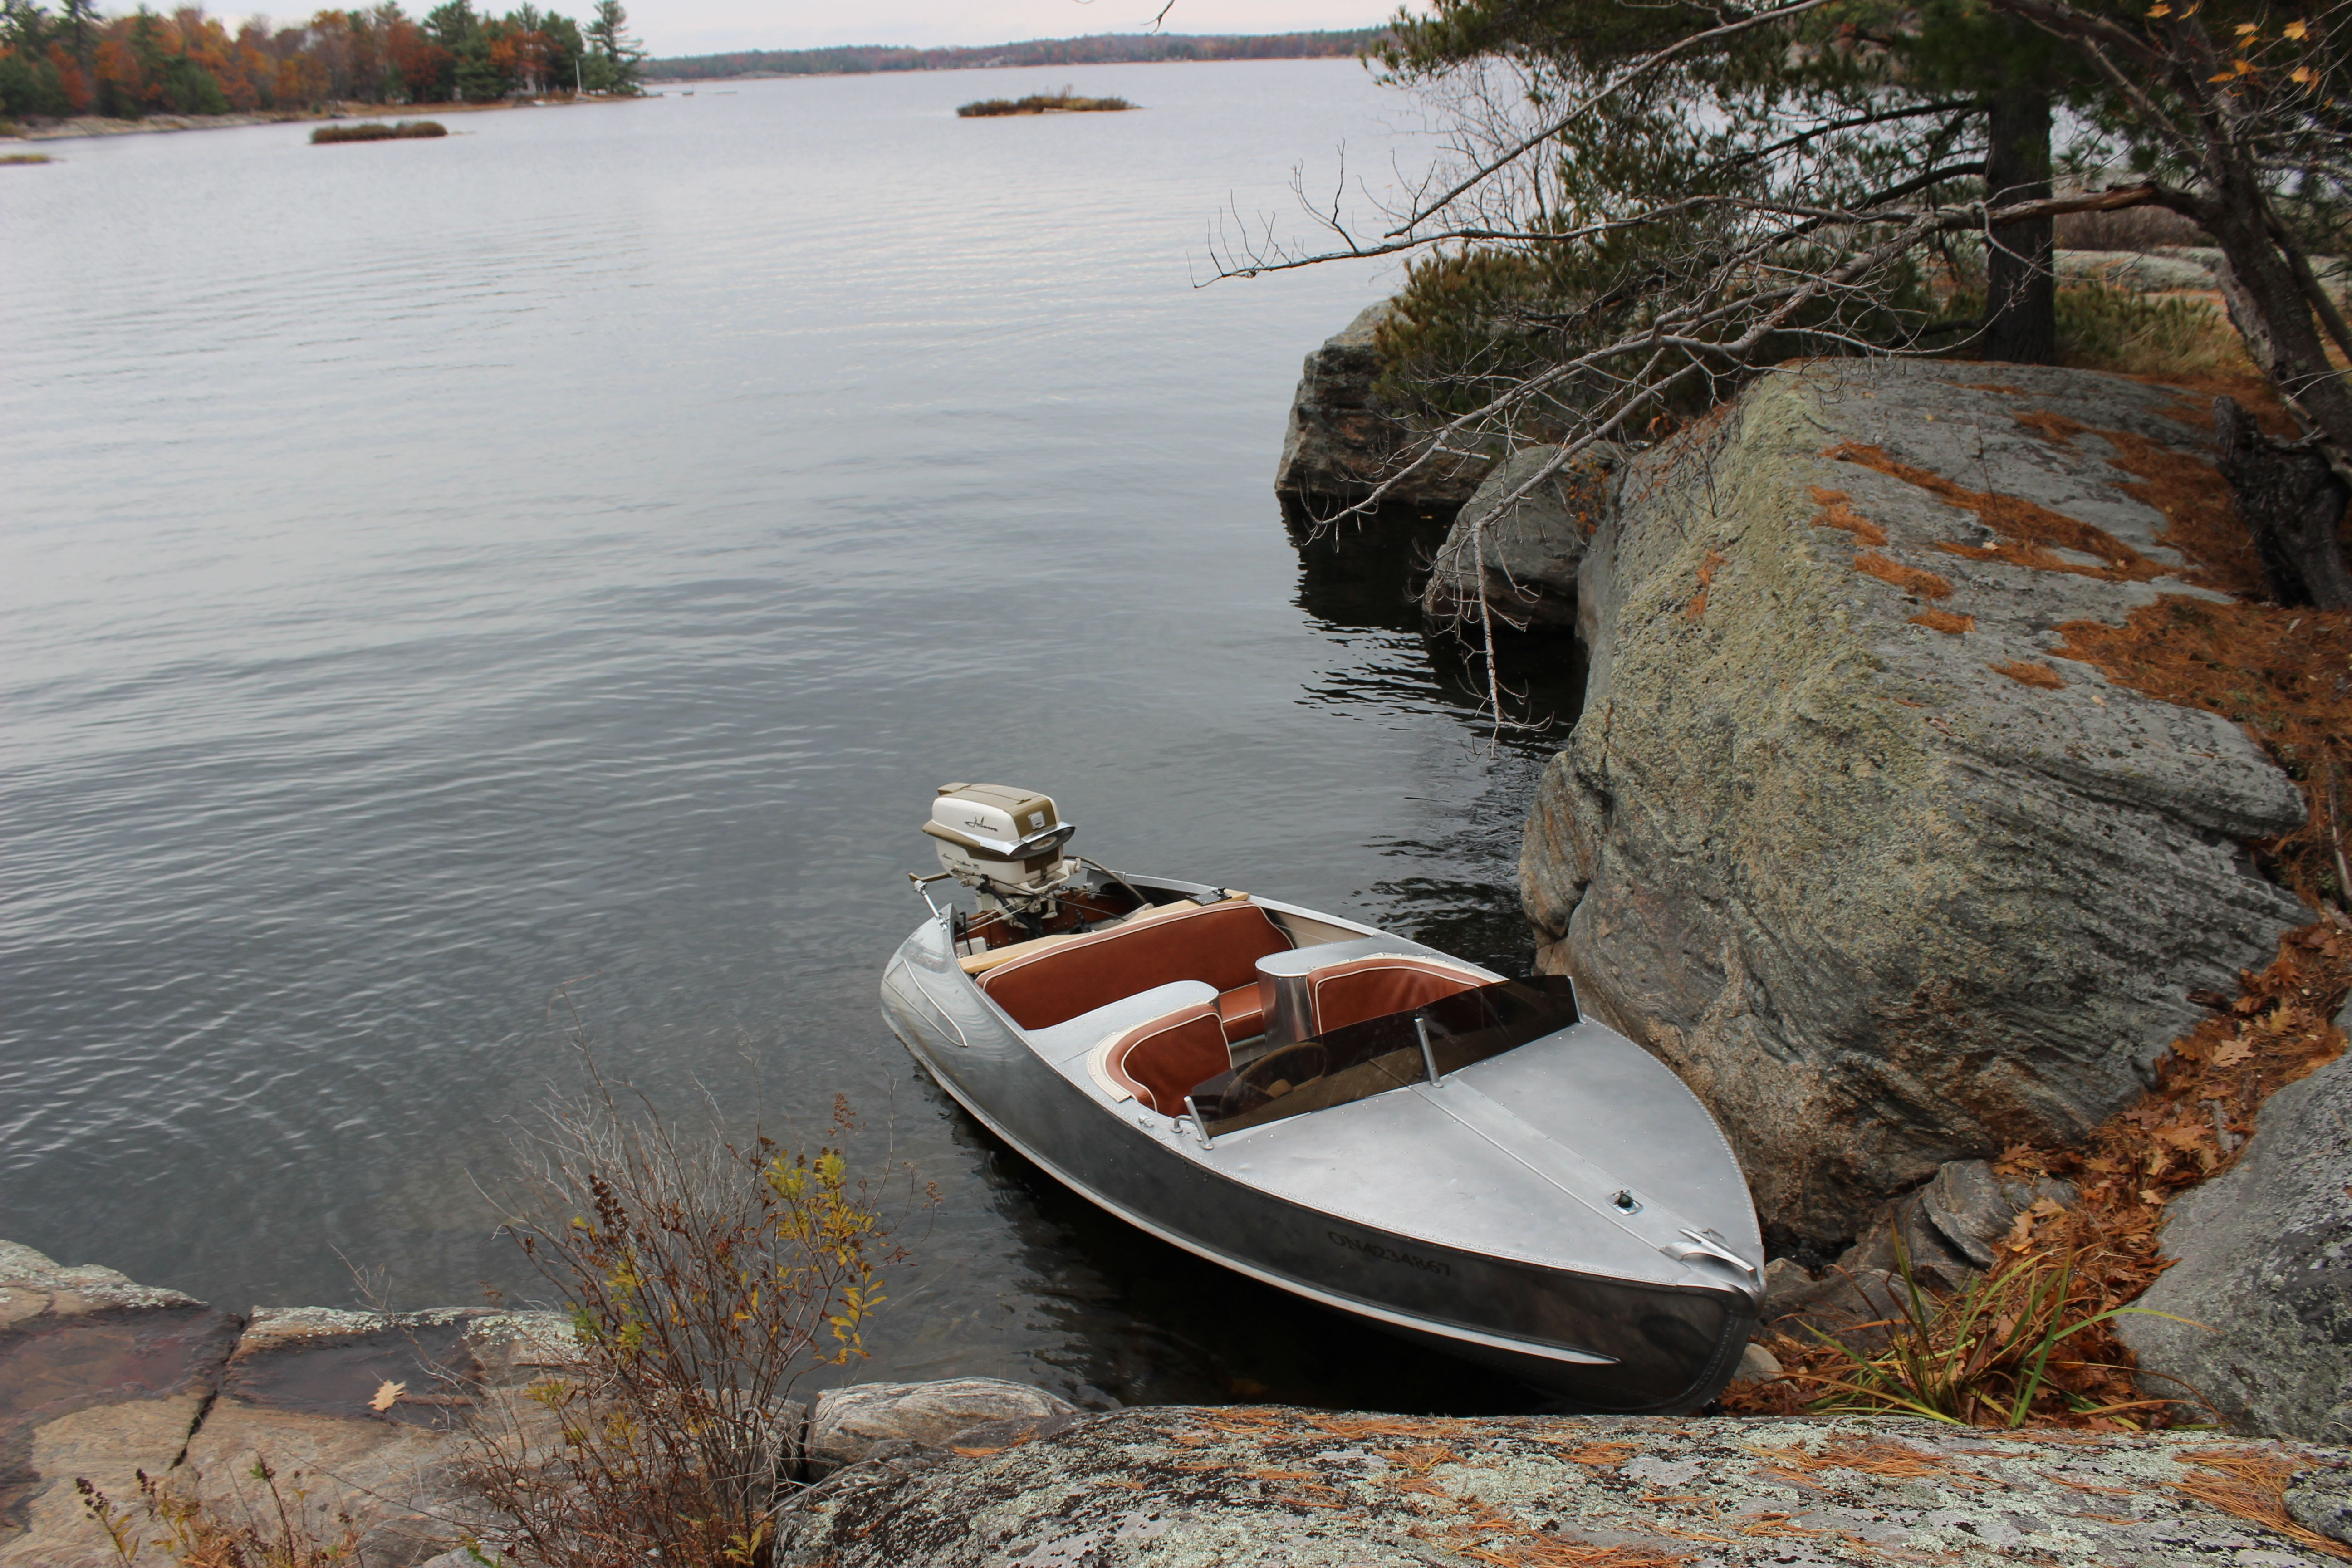 1958 Feathercraft Vagabond Boat In Mactier Ontario 2015 Boat